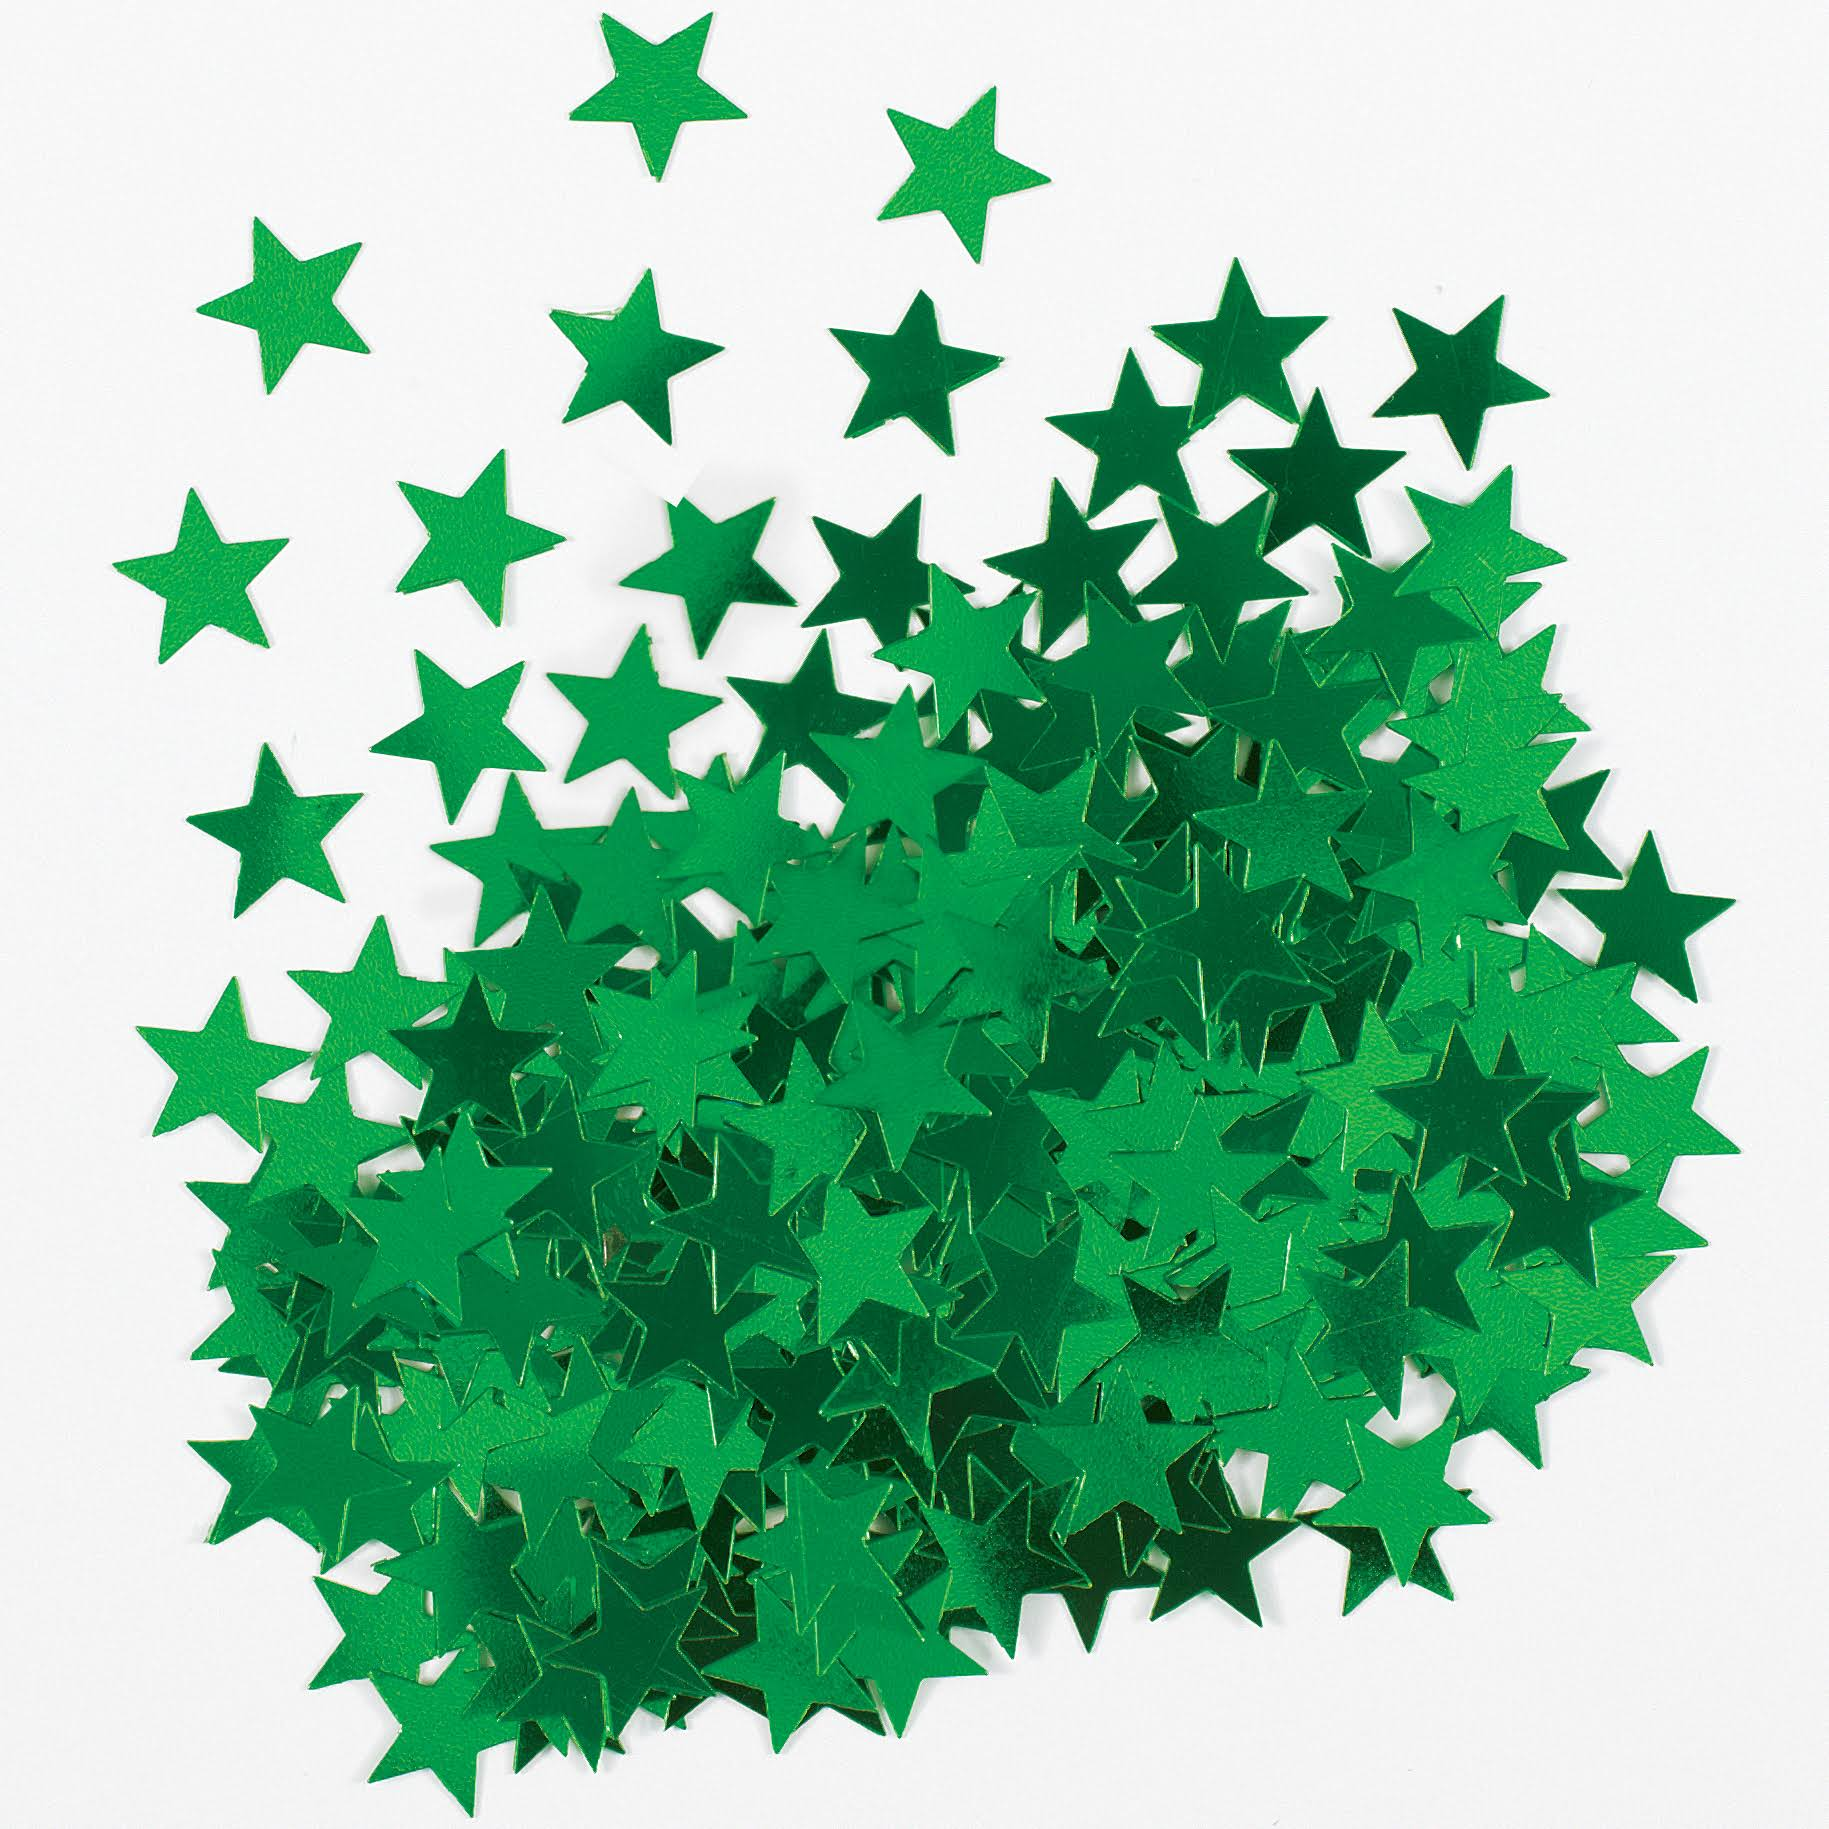 Unique Metallic Star Confetti - Green, 0.5oz